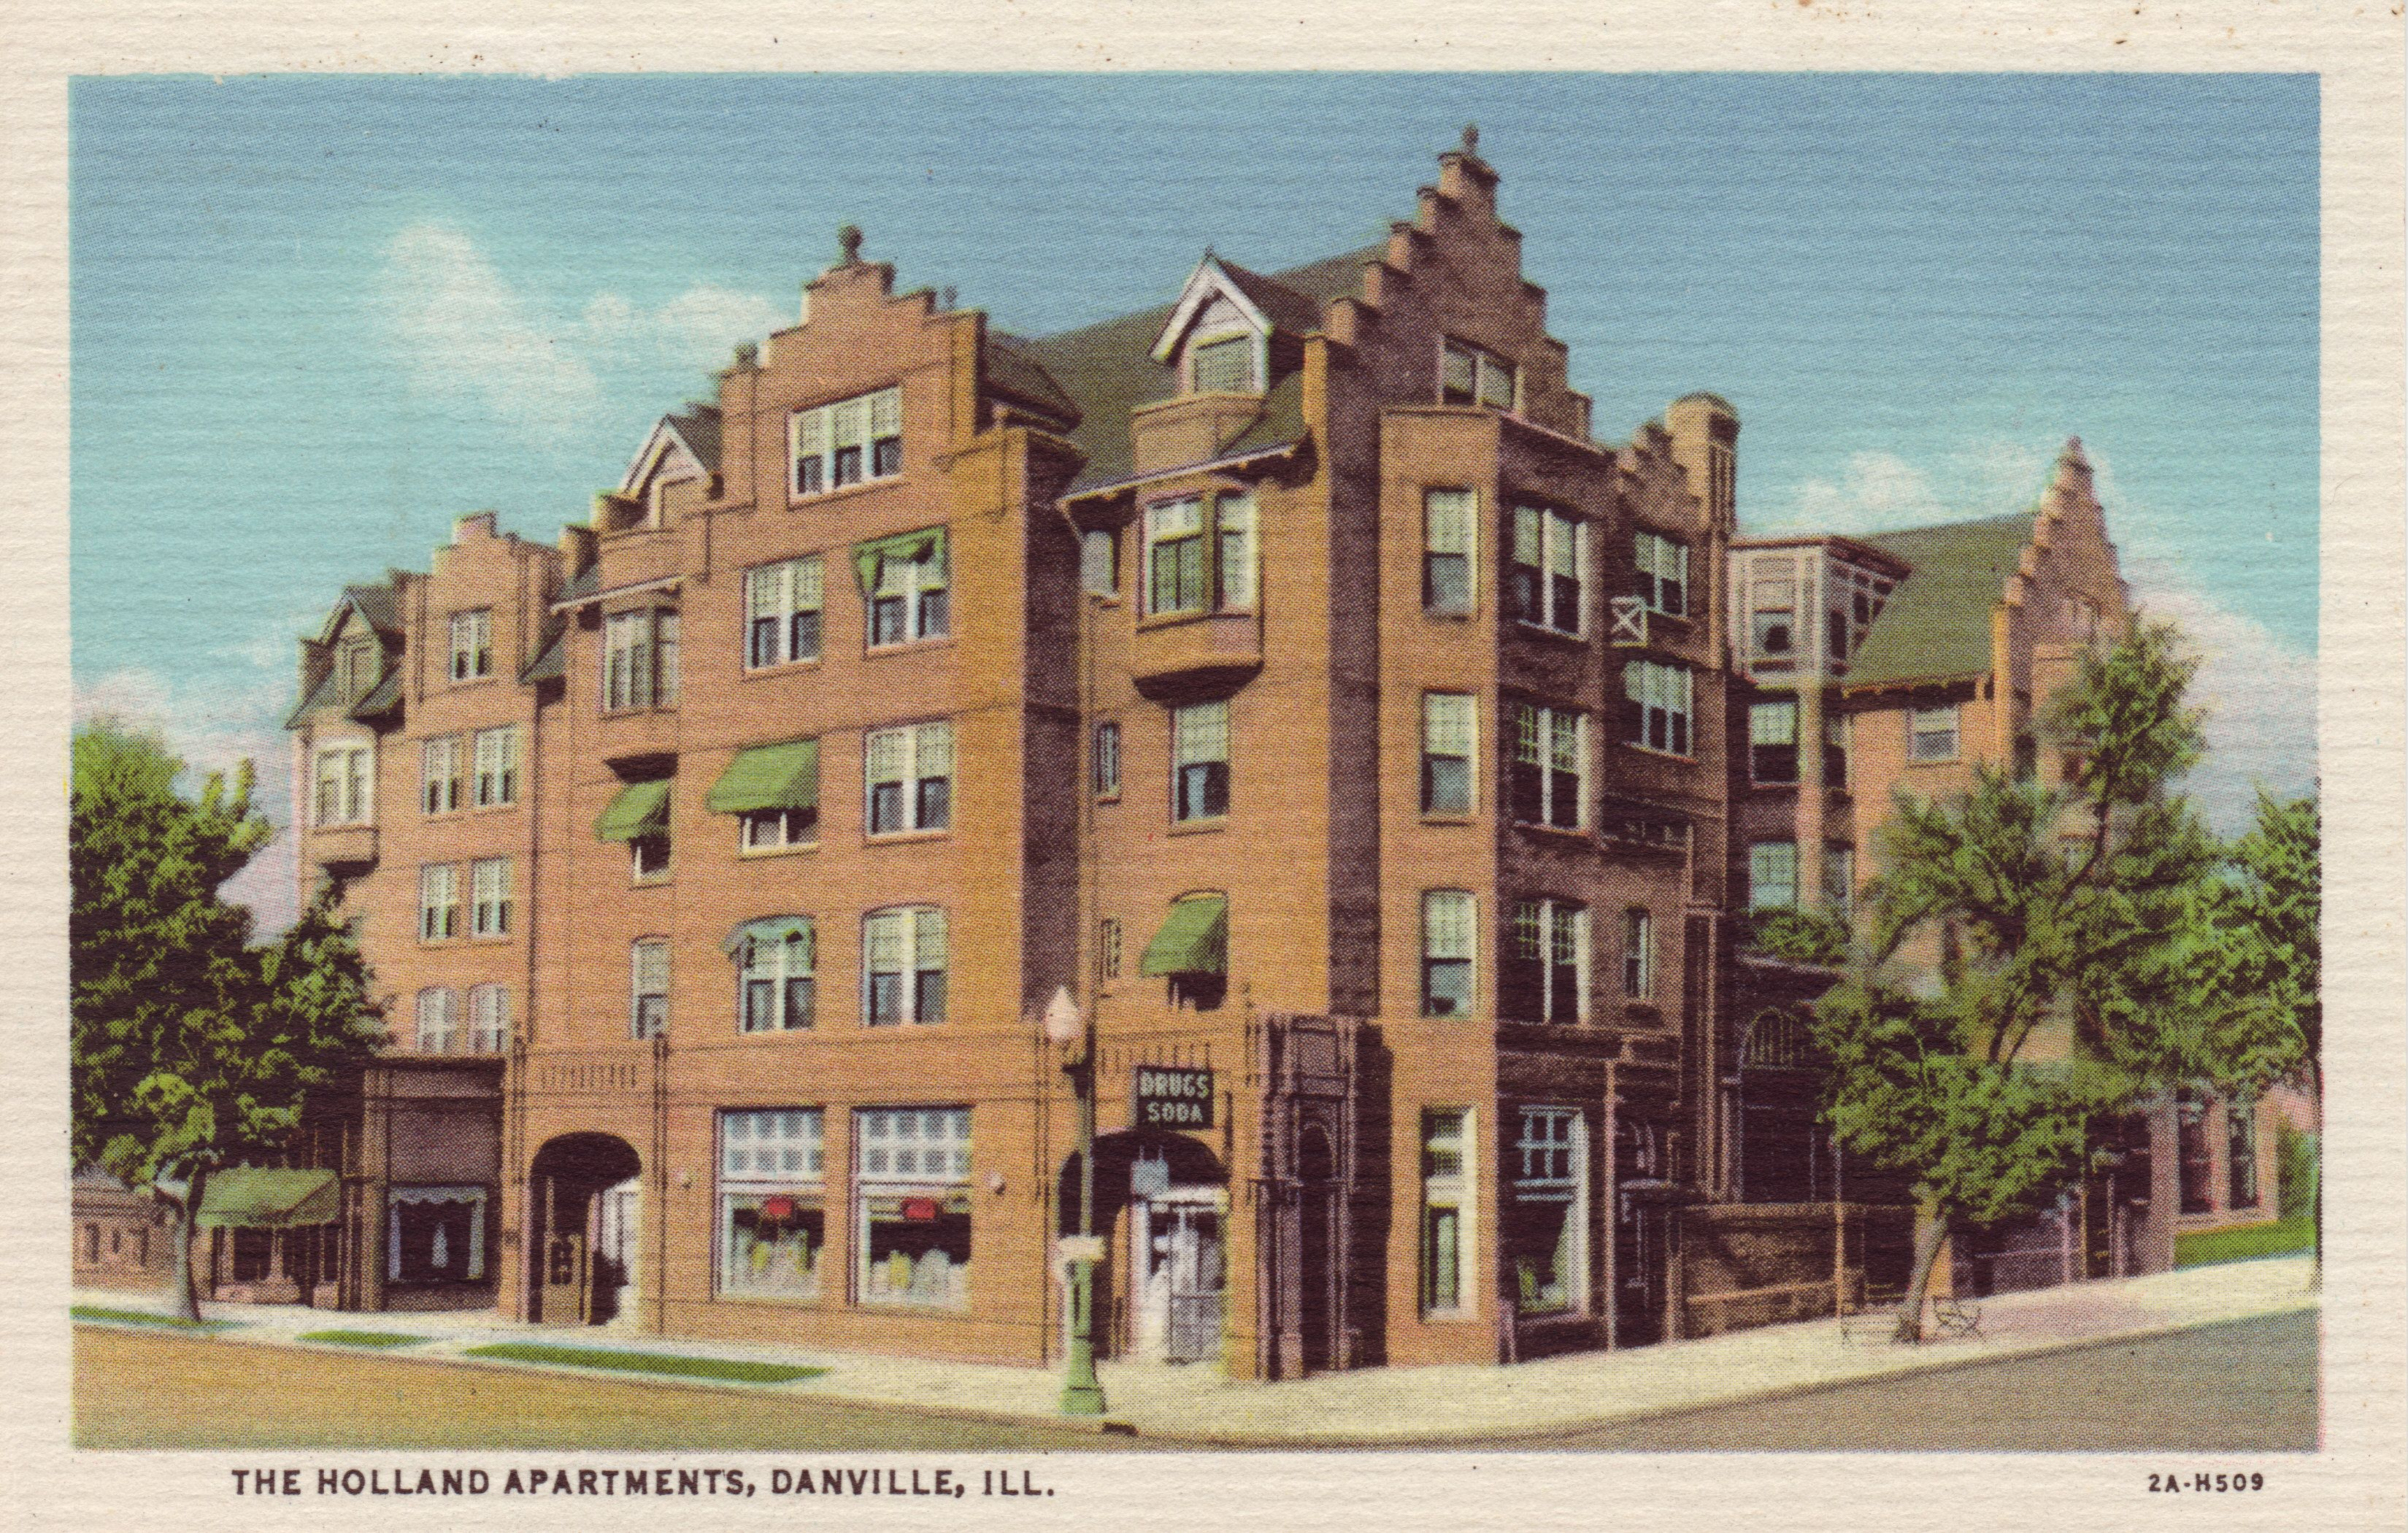 The Holland Apartments, Danville, Ill.